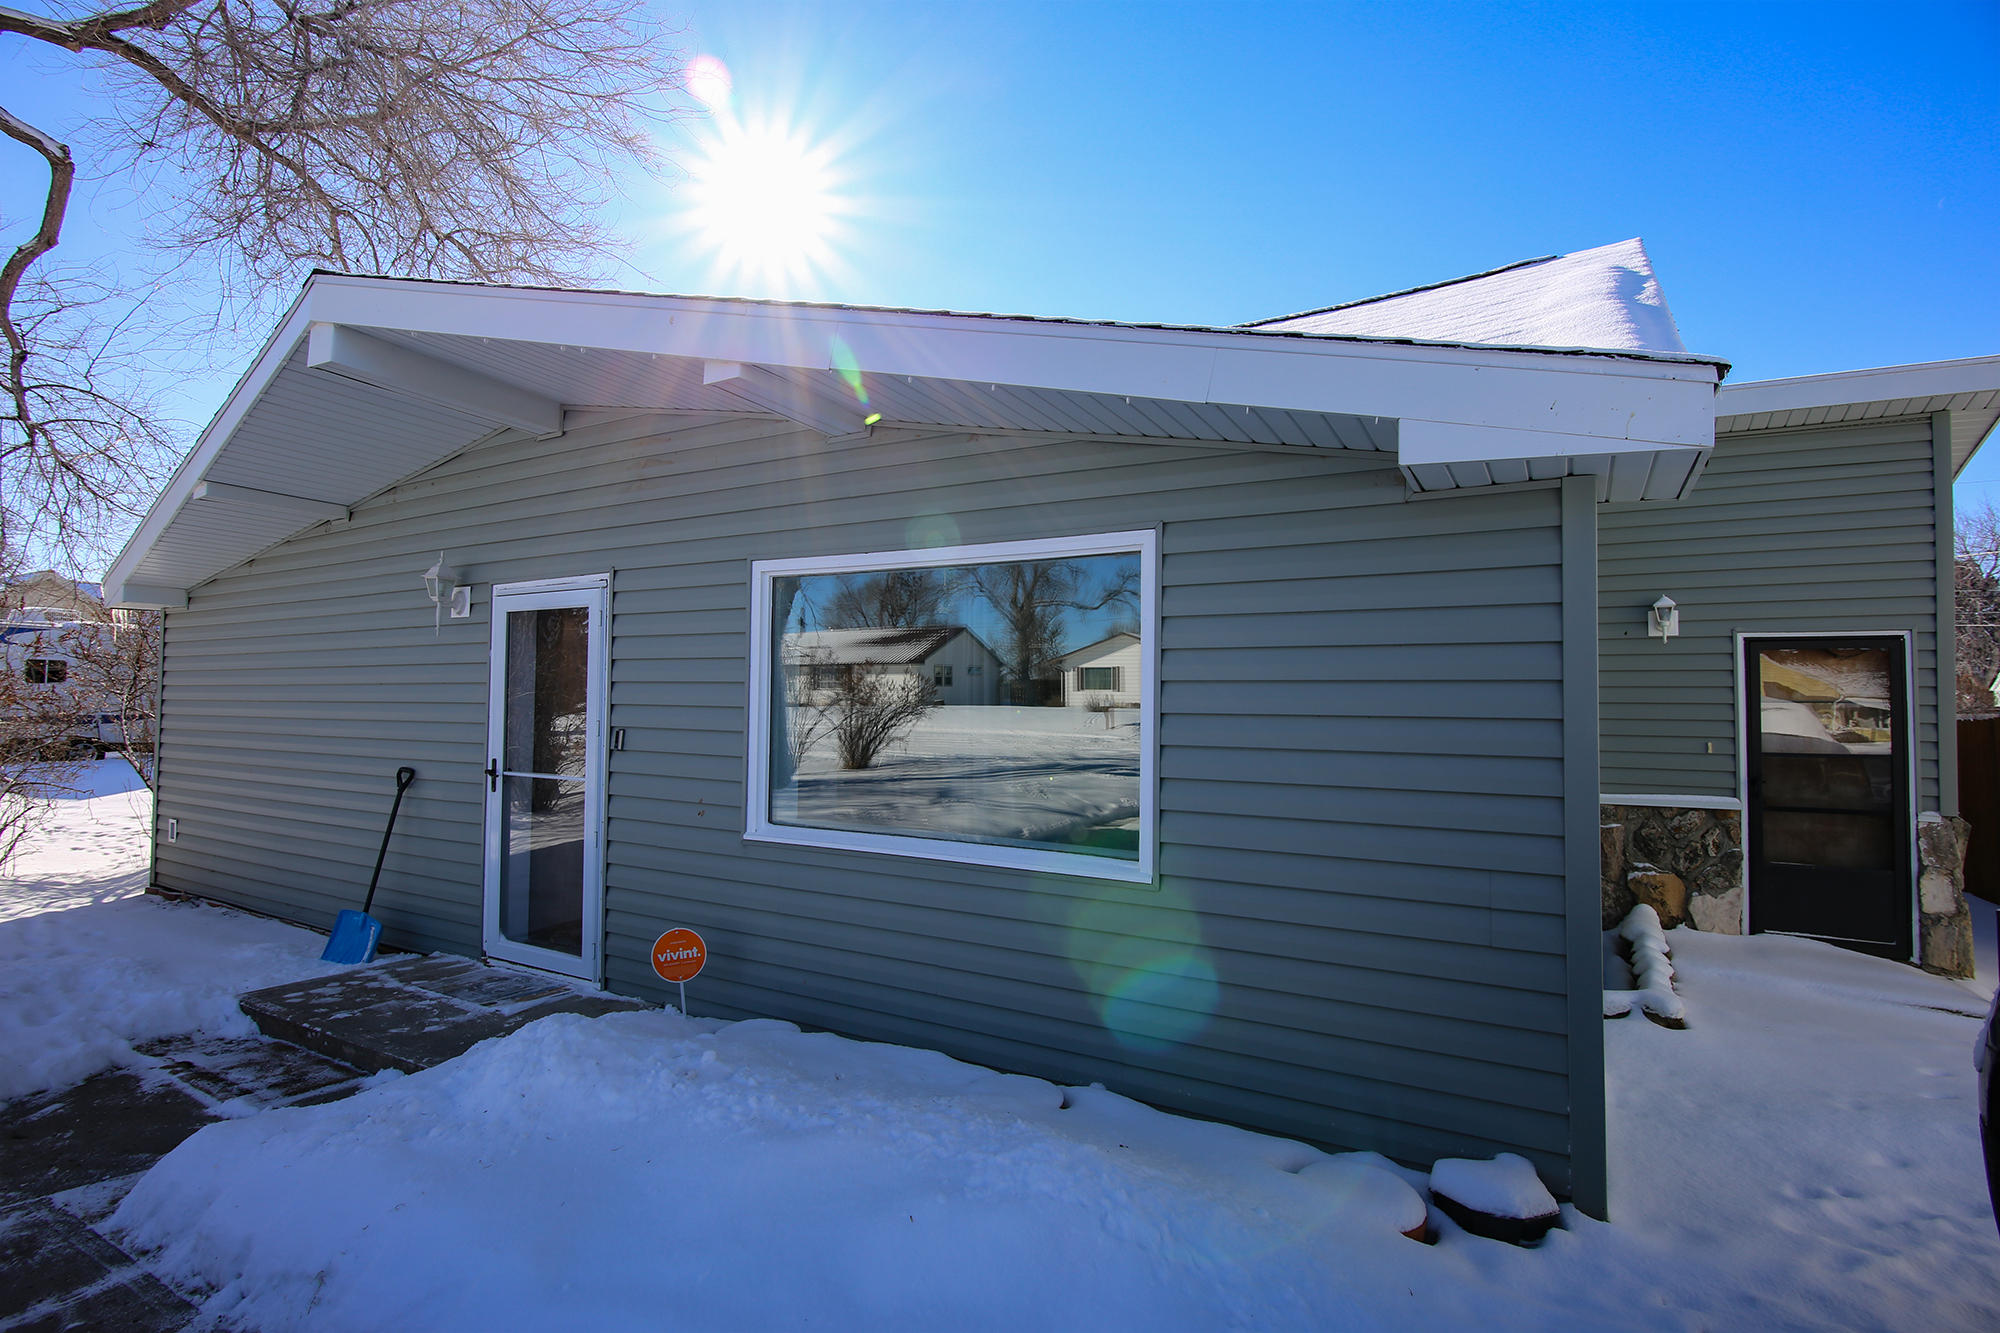 1428 Lewis Street, Sheridan, Wyoming 82801, 3 Bedrooms Bedrooms, ,1.5 BathroomsBathrooms,Residential,For Sale,Lewis,19-193